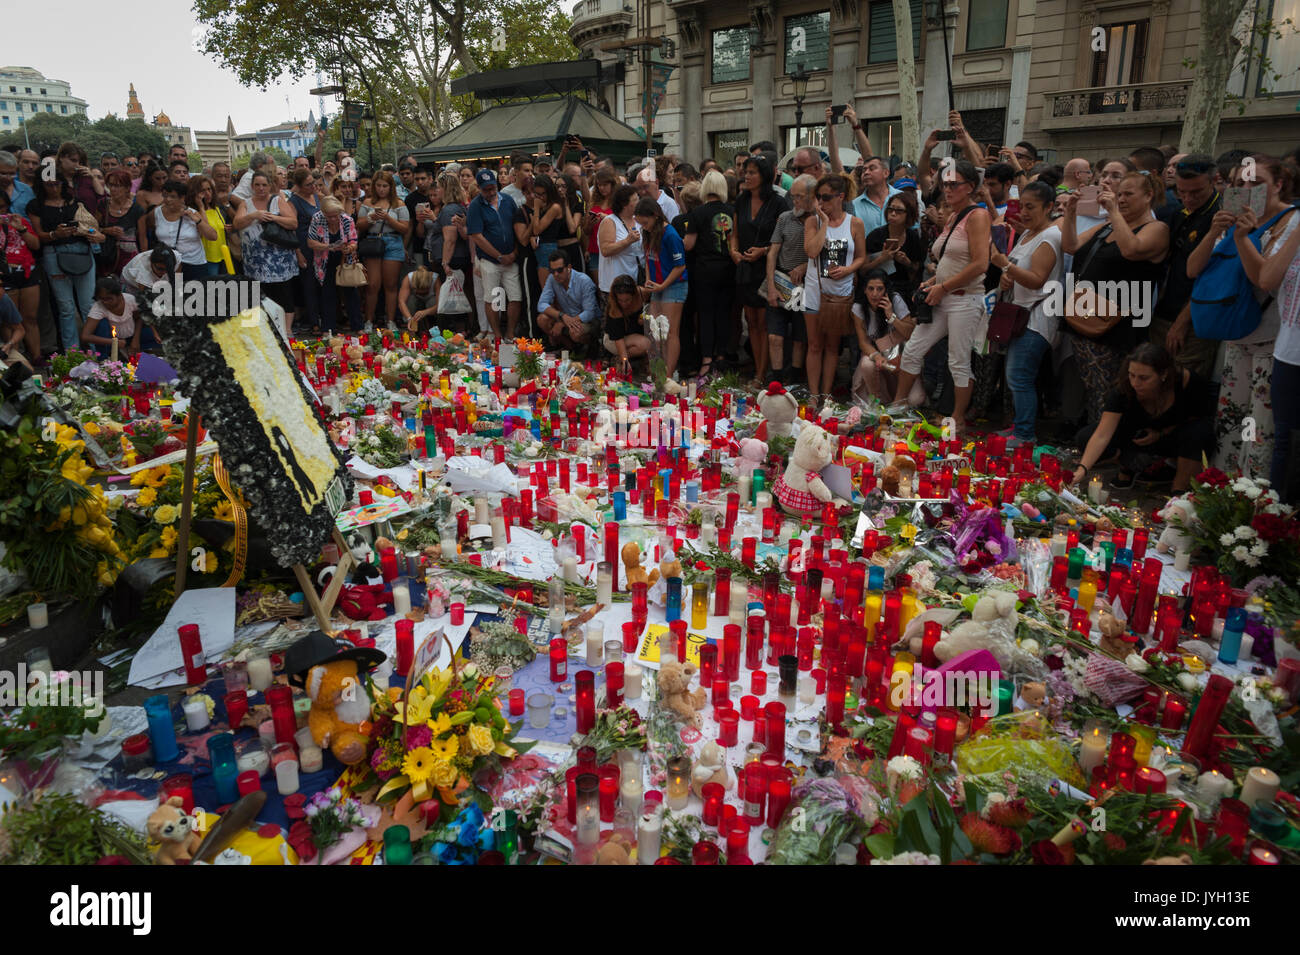 Barcelona, Catalonia, Spain. 19th Aug, 2017. Tributes to victims of Barcelona attack. Credit: Charlie Perez/Alamy Live News - Stock Image